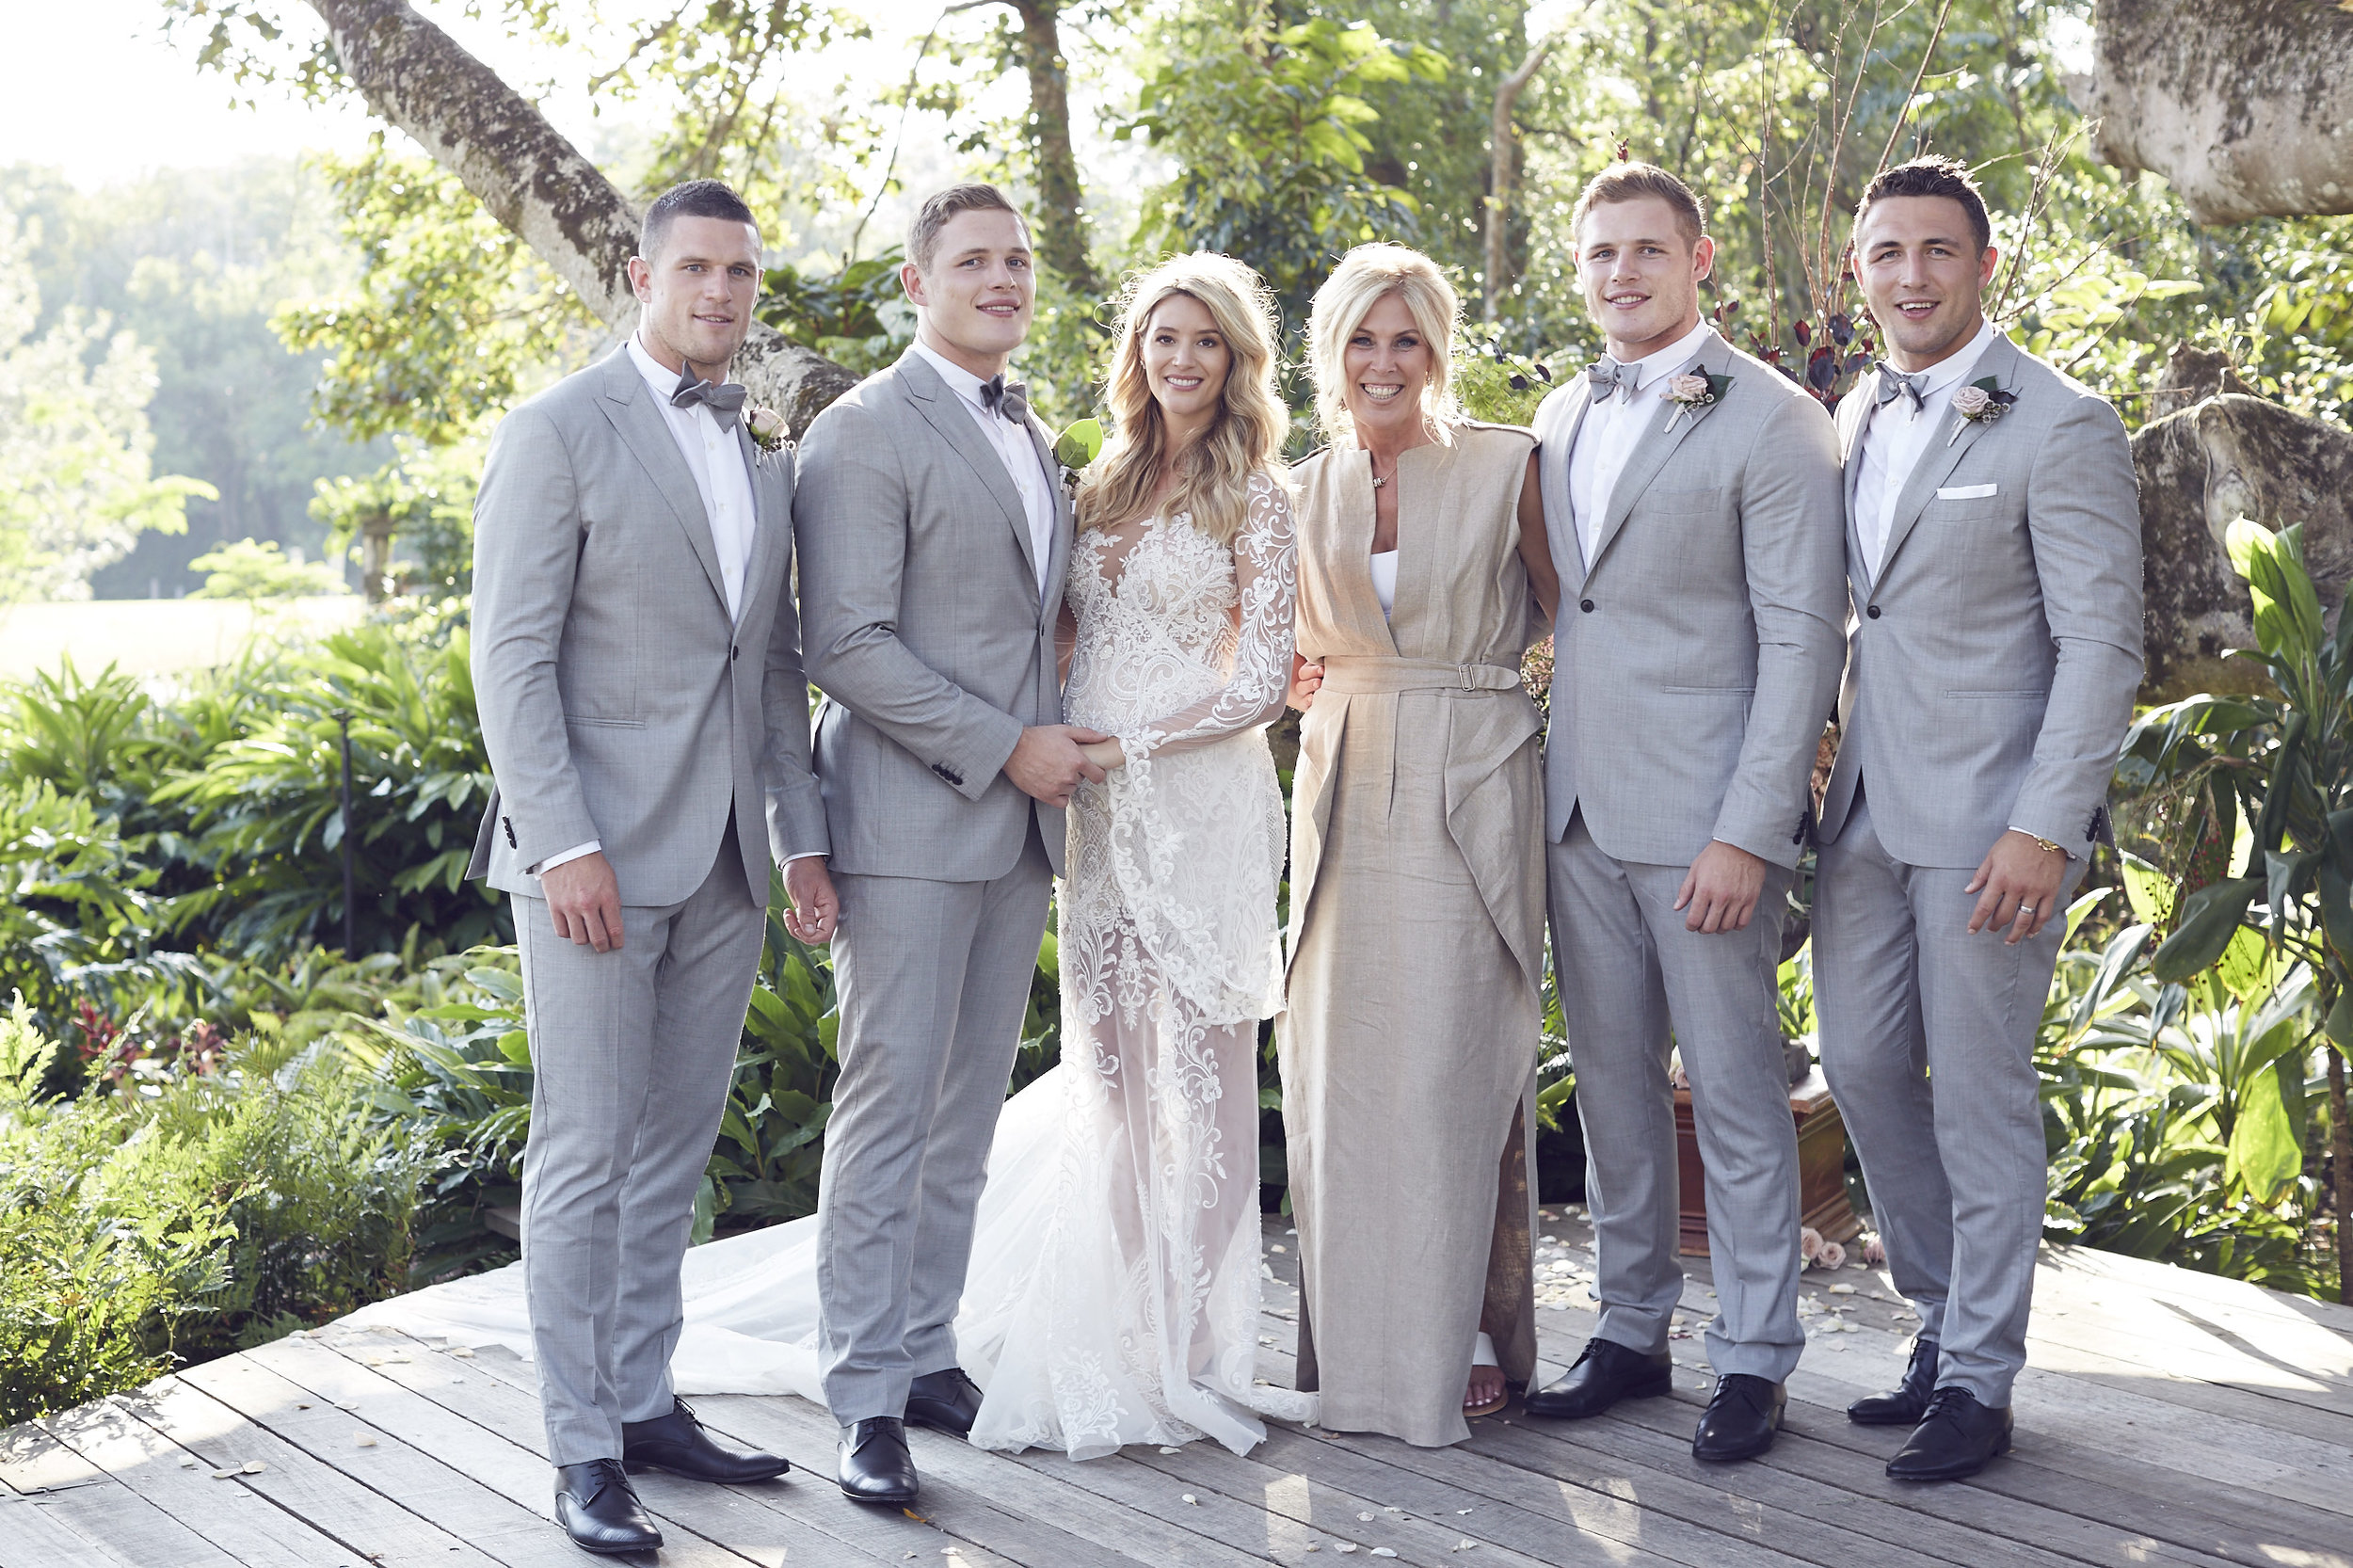 Joanna and George Burgess Wedding by Lost In Love Photography